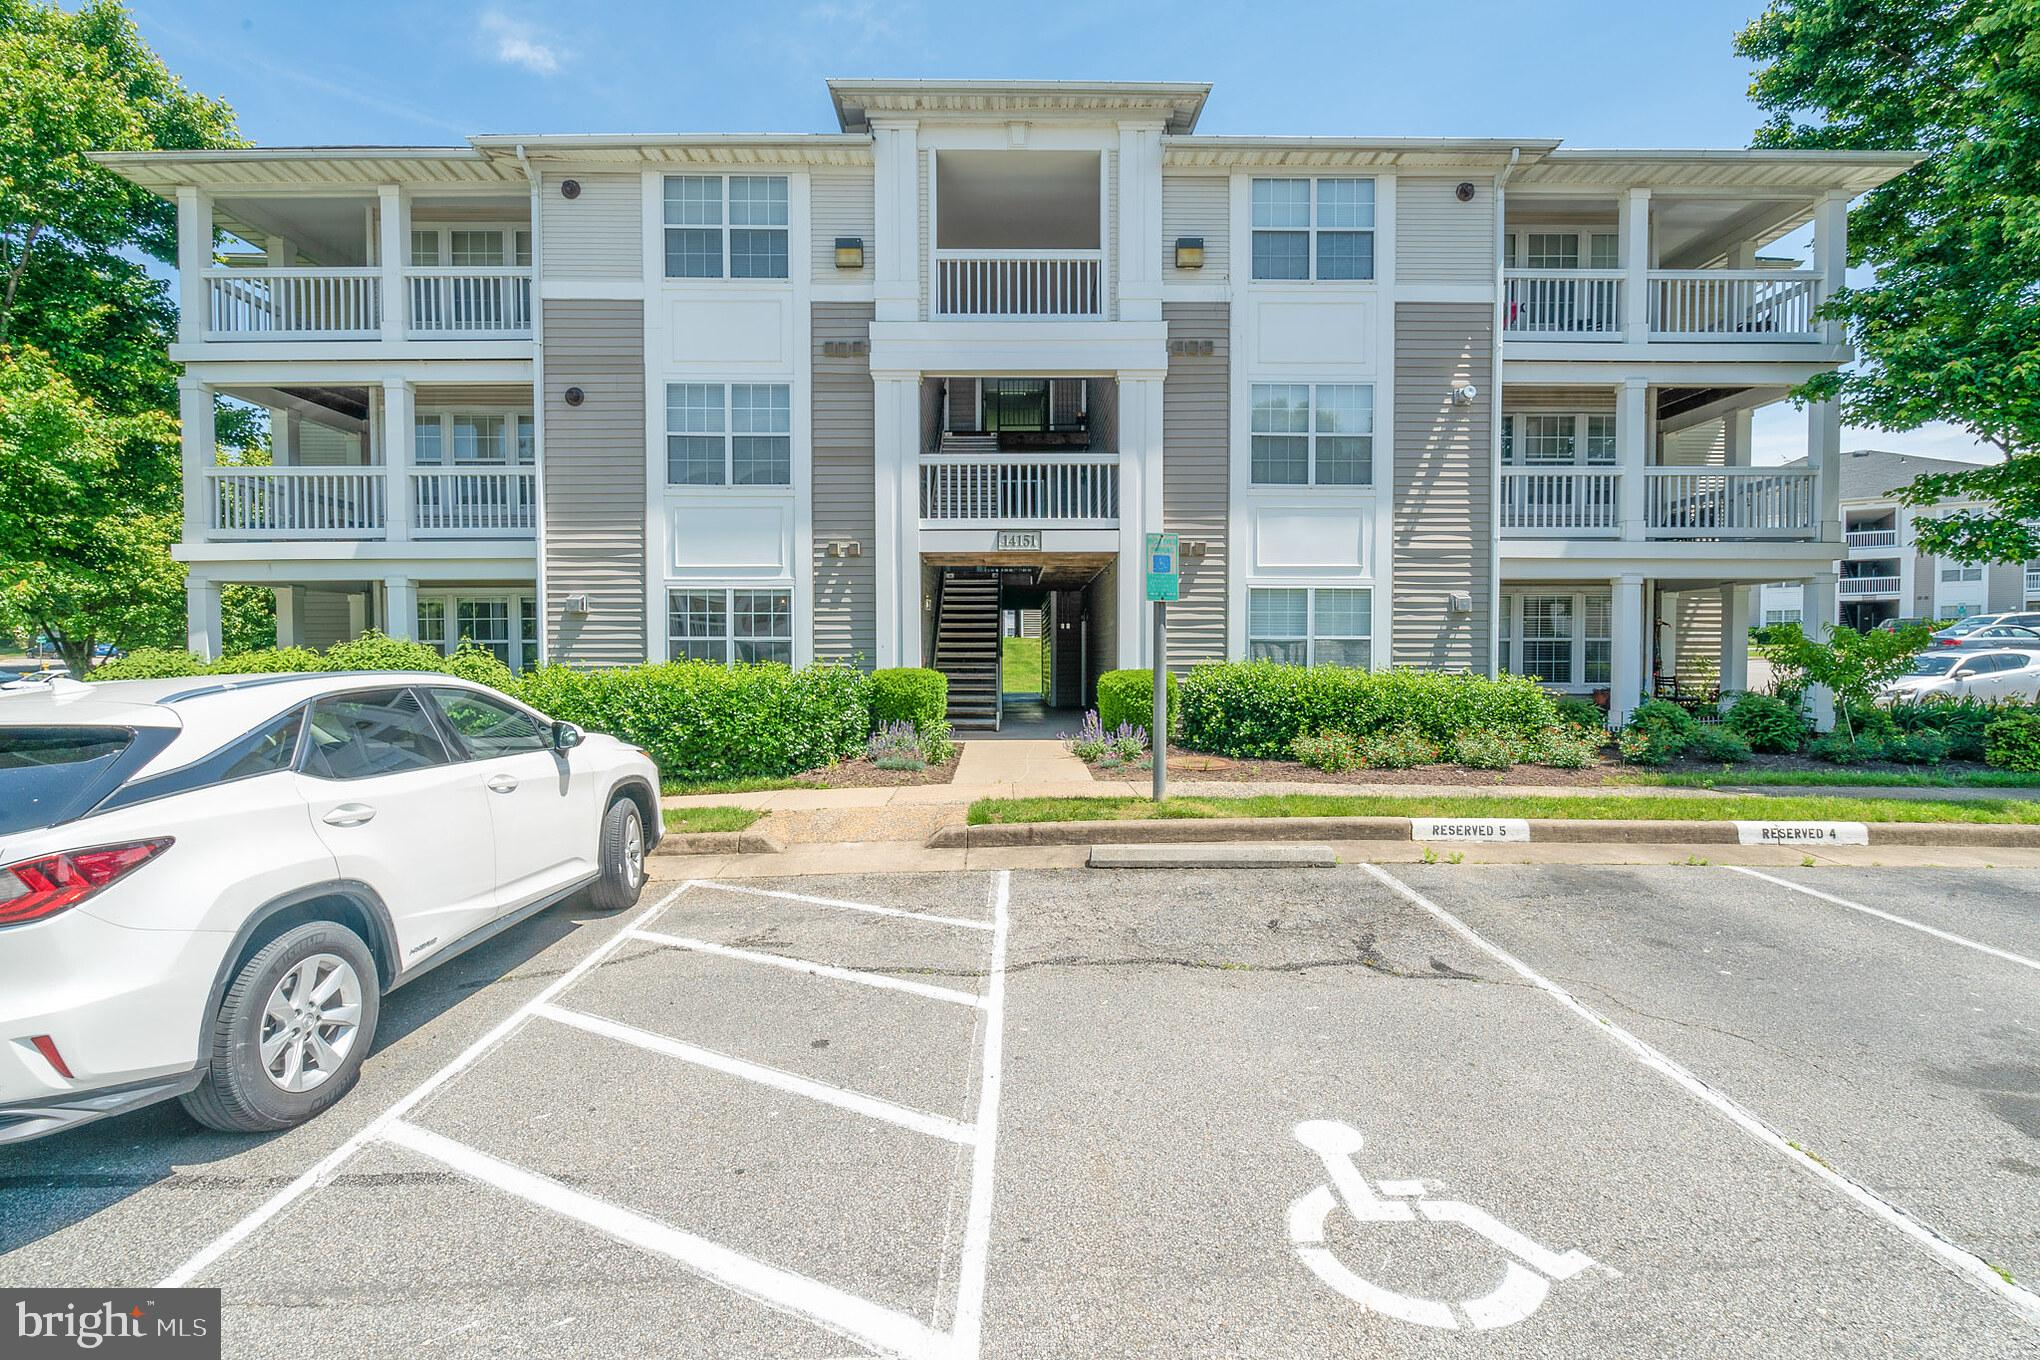 Beautiful Condo in the Prospect at Lakeside Community. 2 Bedroom, 2 Bath, The Den with a large window could be used as a Third Bedroom. Granite countertops,New wood floor,New  paint.In unit Washer/Dryer,Plenty of Parking Lot, Community pool and recreational facilities. The property is located close to I-95, commuter lots and public transportation. plenty of Shopping close by including Potomac Mills and Wegmans and Stonebridge.  *FHA approved.